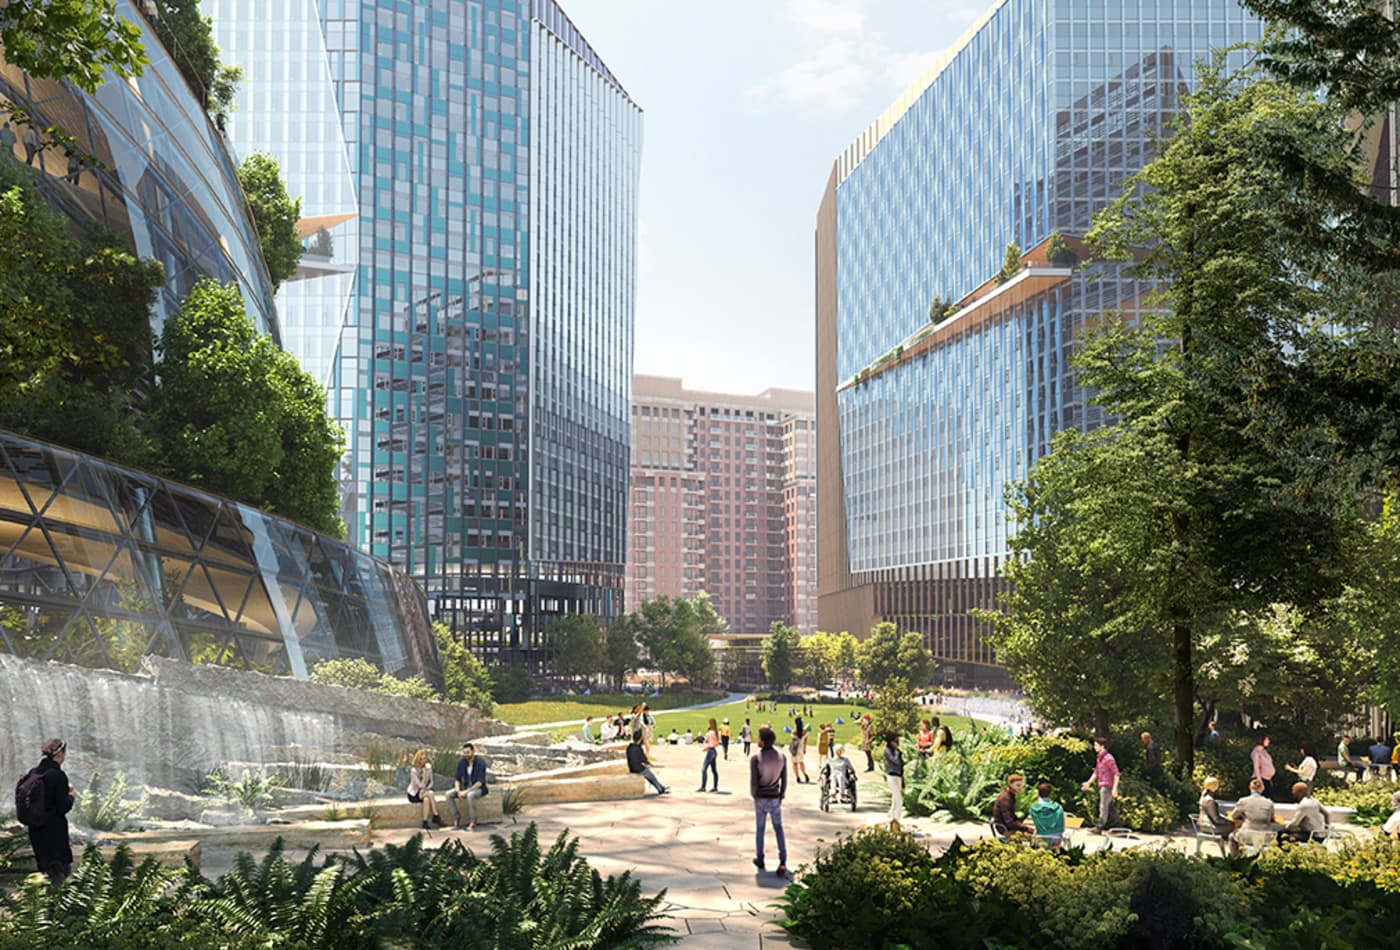 Amazon releases new images of HQ2 as it ramps up hiring in Virginia